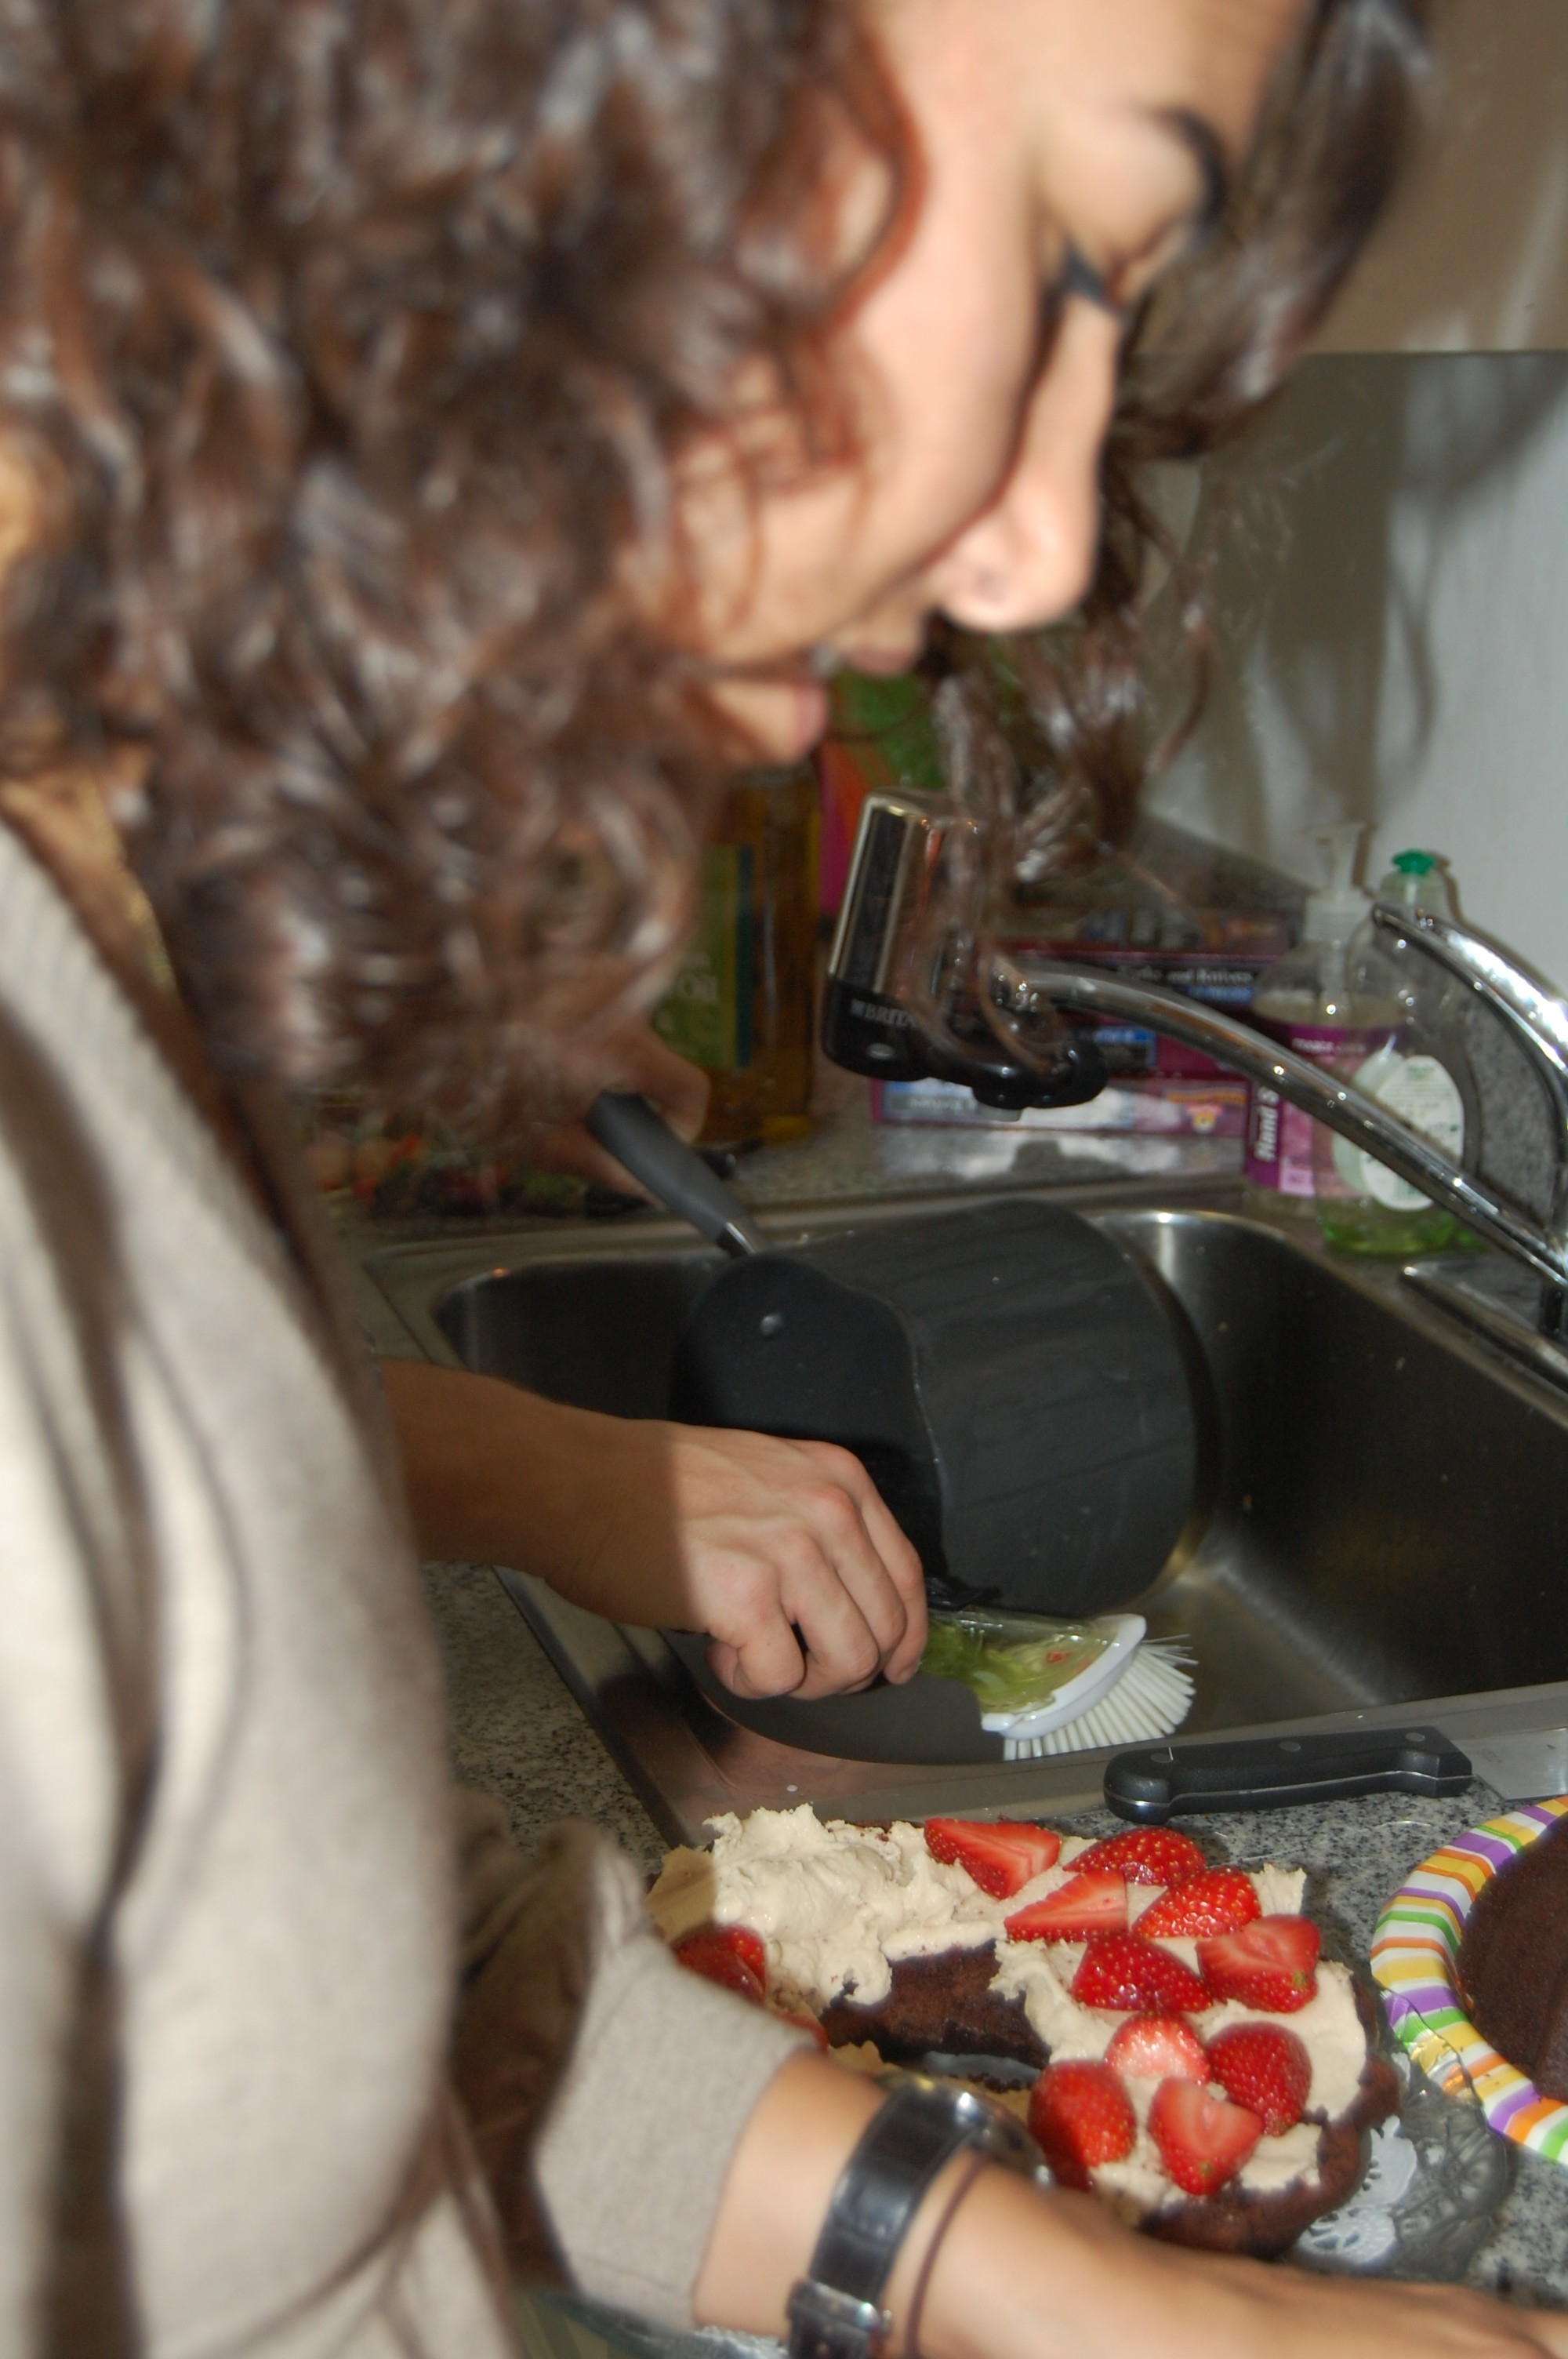 Liza is preparing the last minute touches to her vegan chocolate strawberry cake.